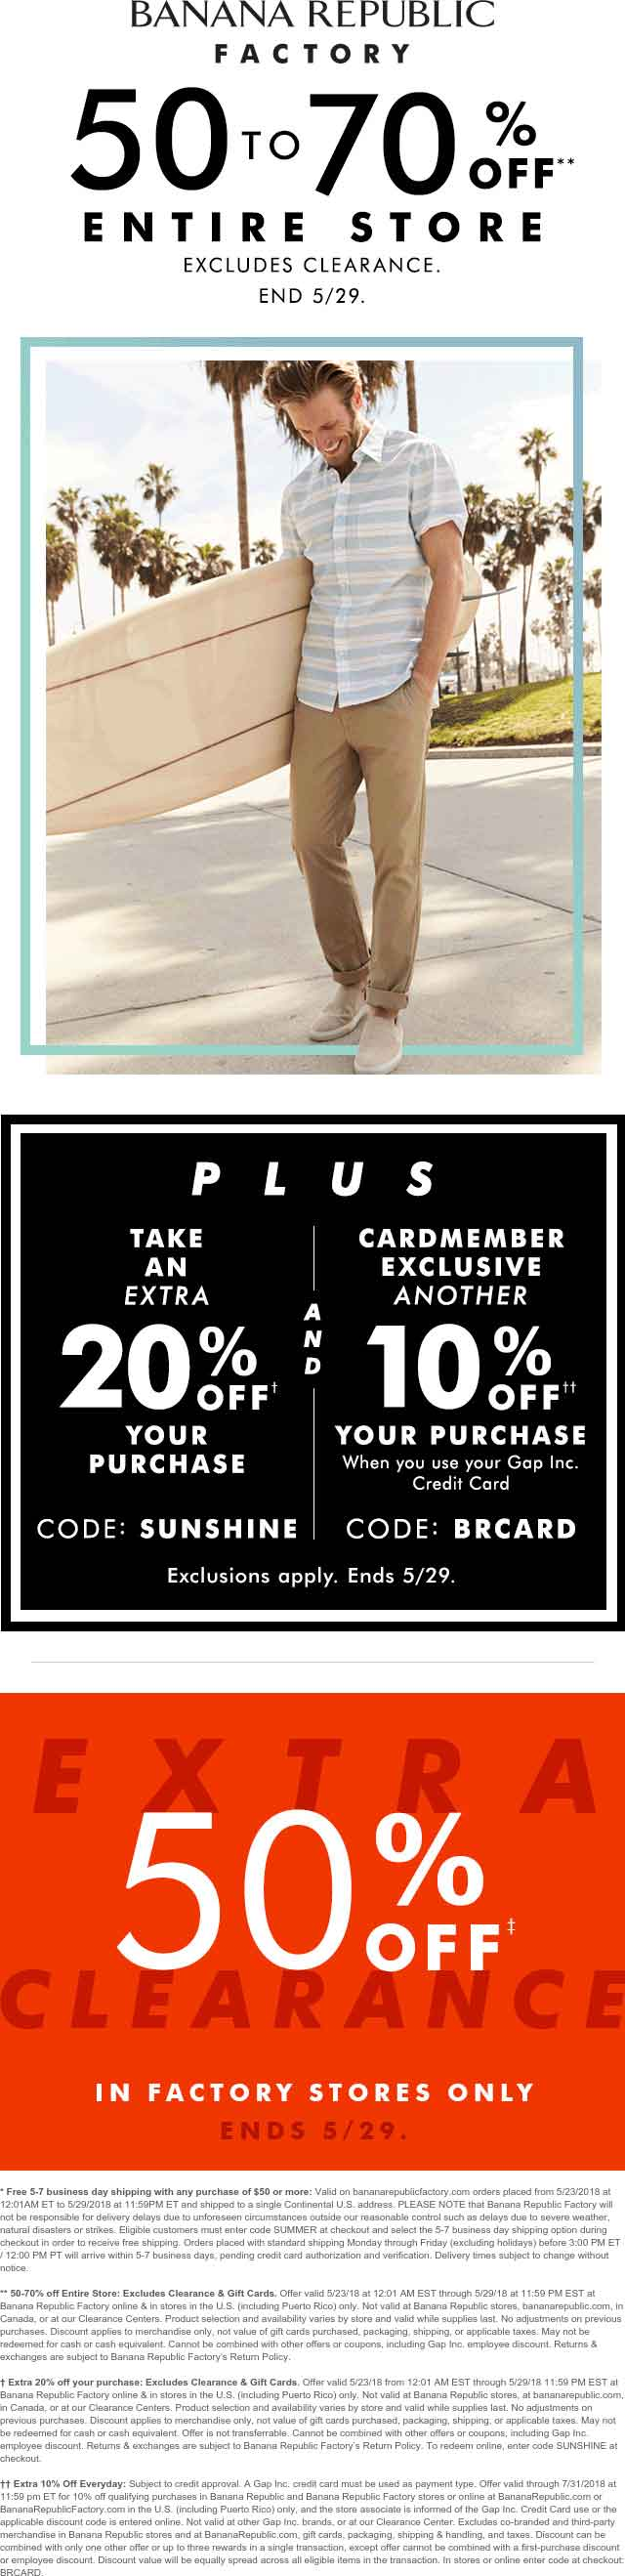 BananaRepublic.com Promo Coupon Everything is 50-70% off at Banana Republic Factory, ditto online